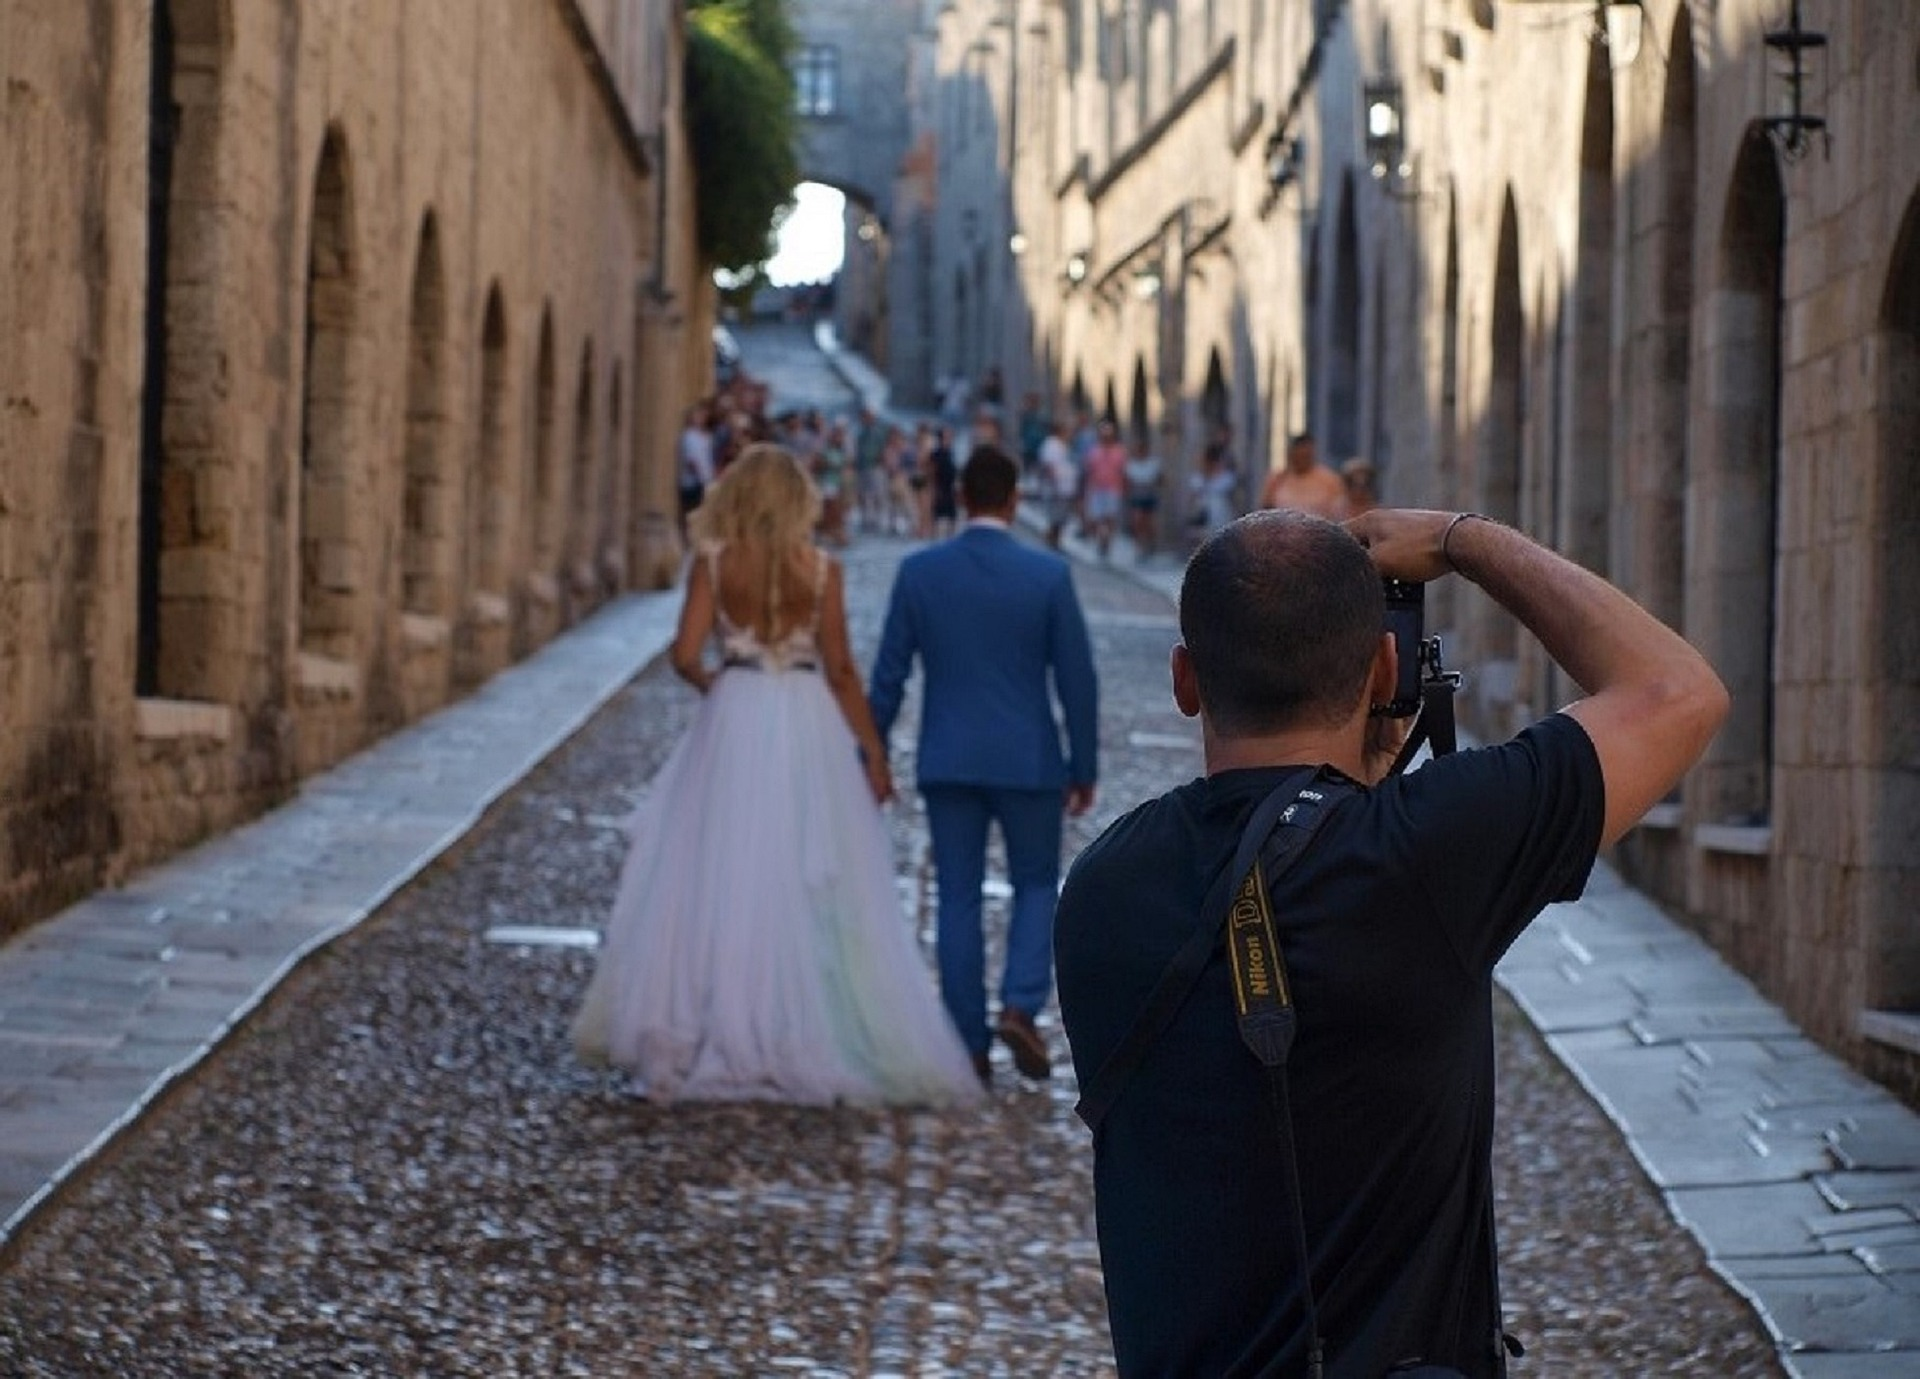 wedding photographer taking photo of bride and groom in small street in europe